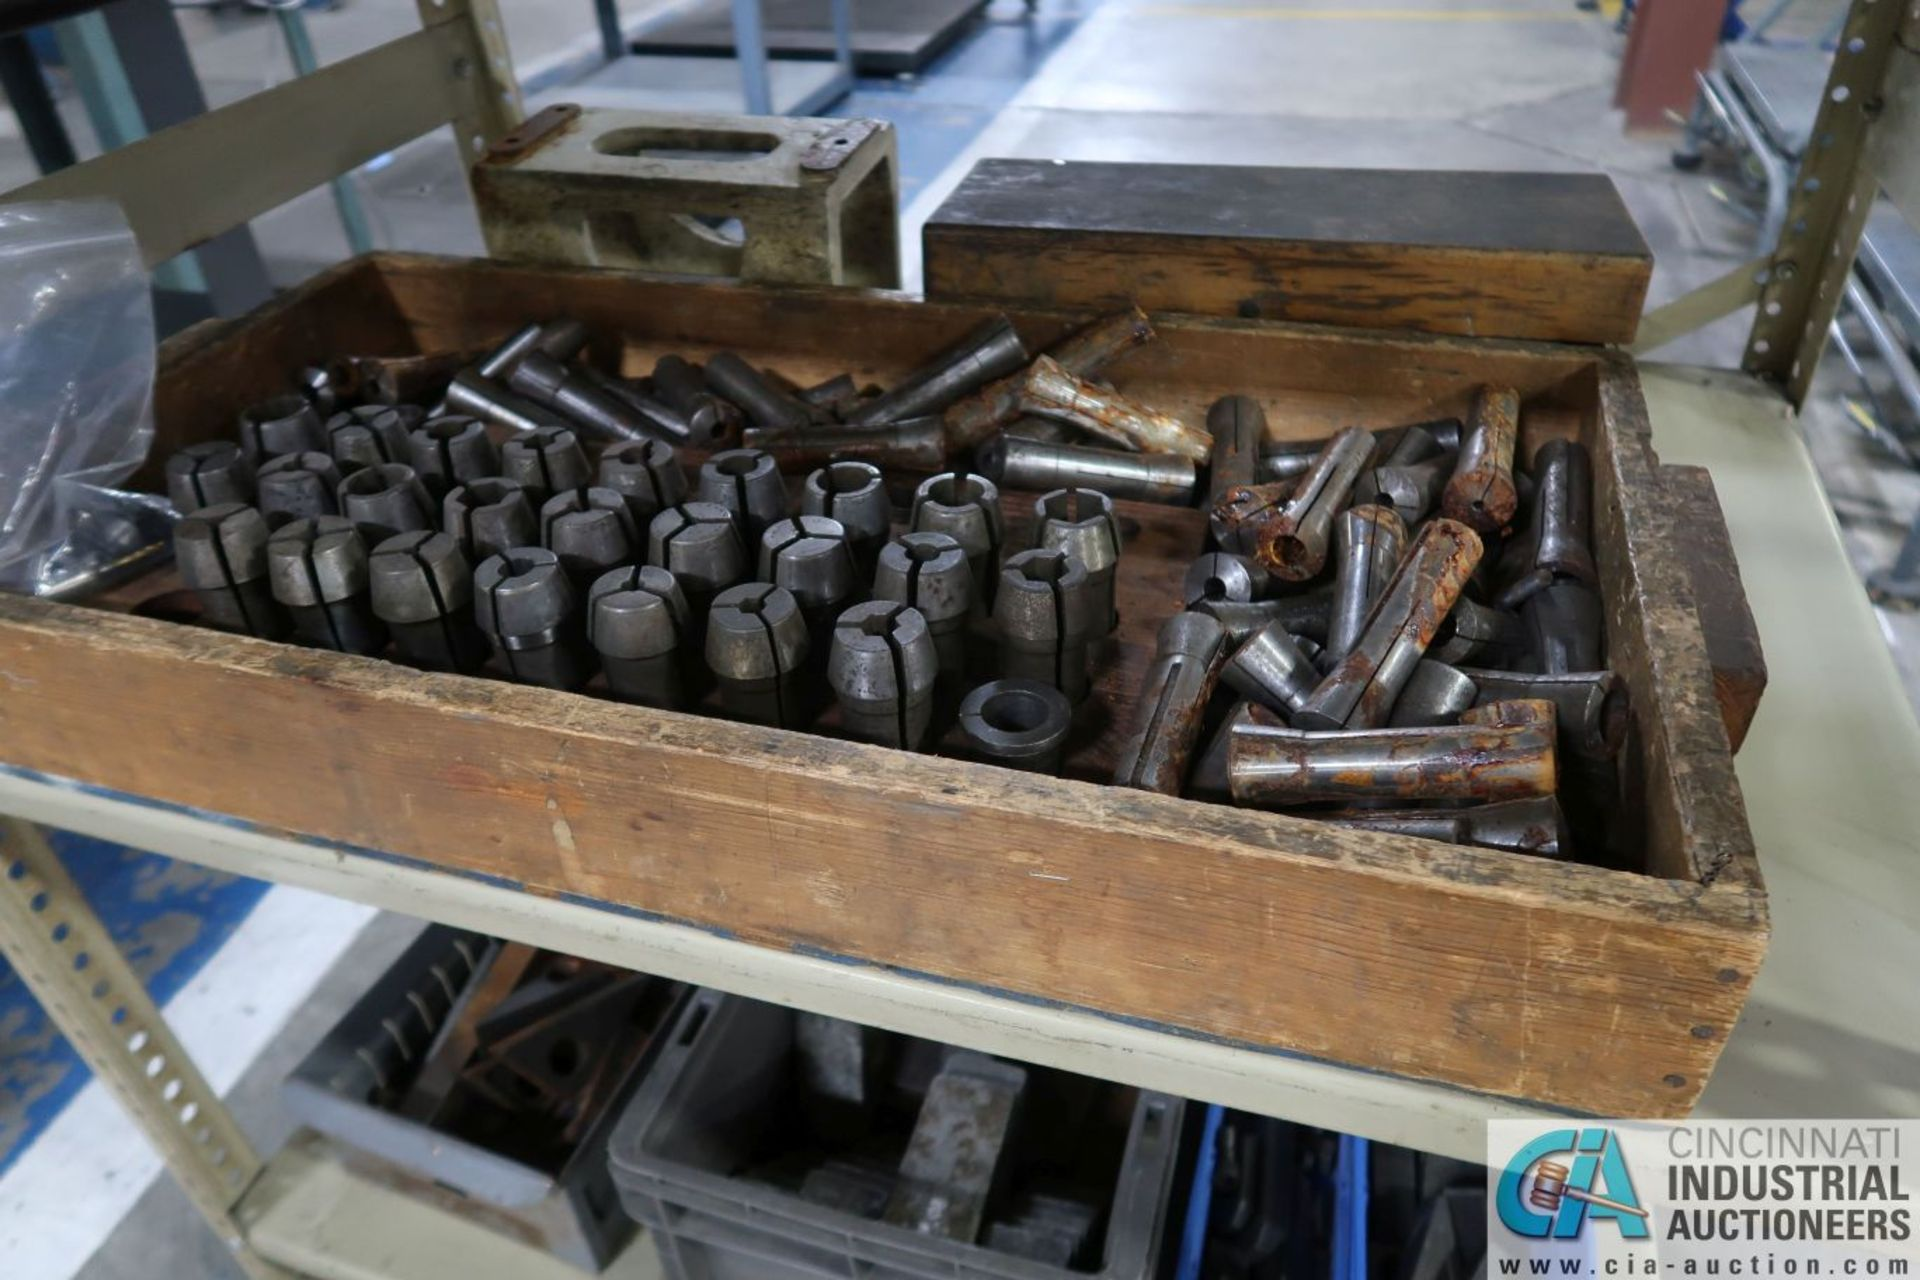 (LOT) MISCELLANEOUS DRILL INDEXES WITH REAMERS, COLLETS AND HOLDDOWNS WITH SHELVING - Image 3 of 4